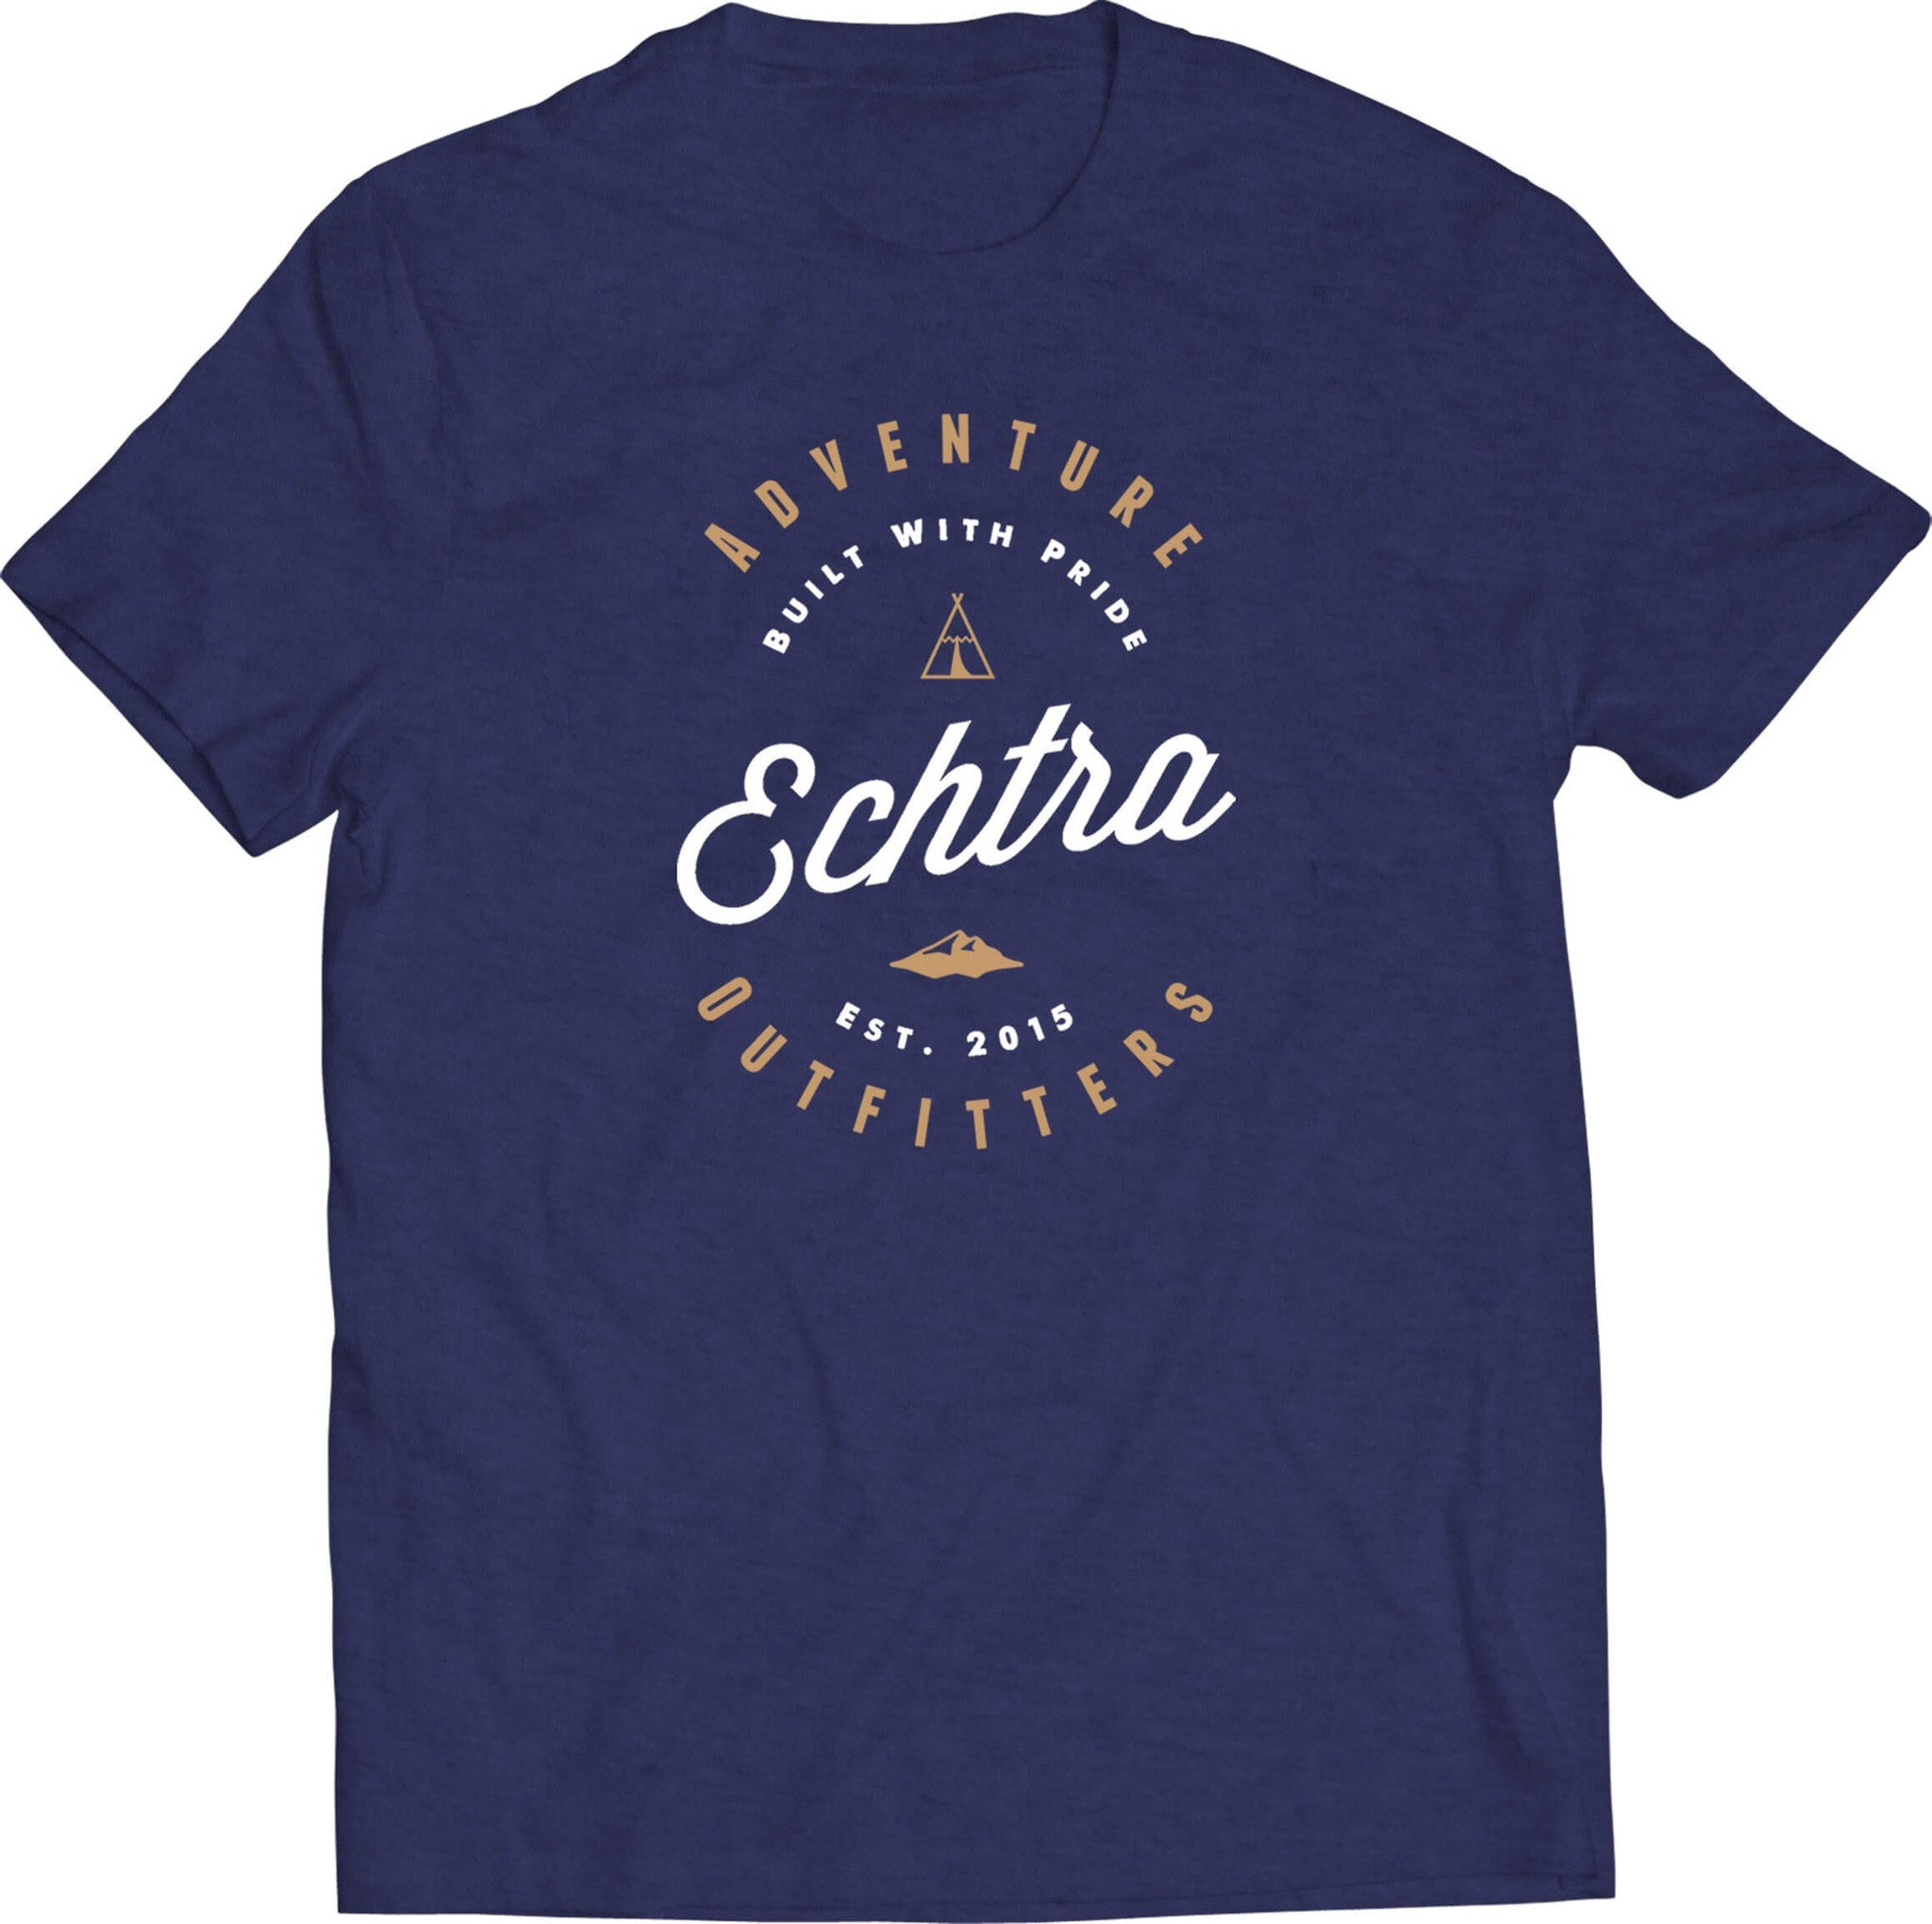 Built With Pride Tee - Echtra Outfitters  - 2